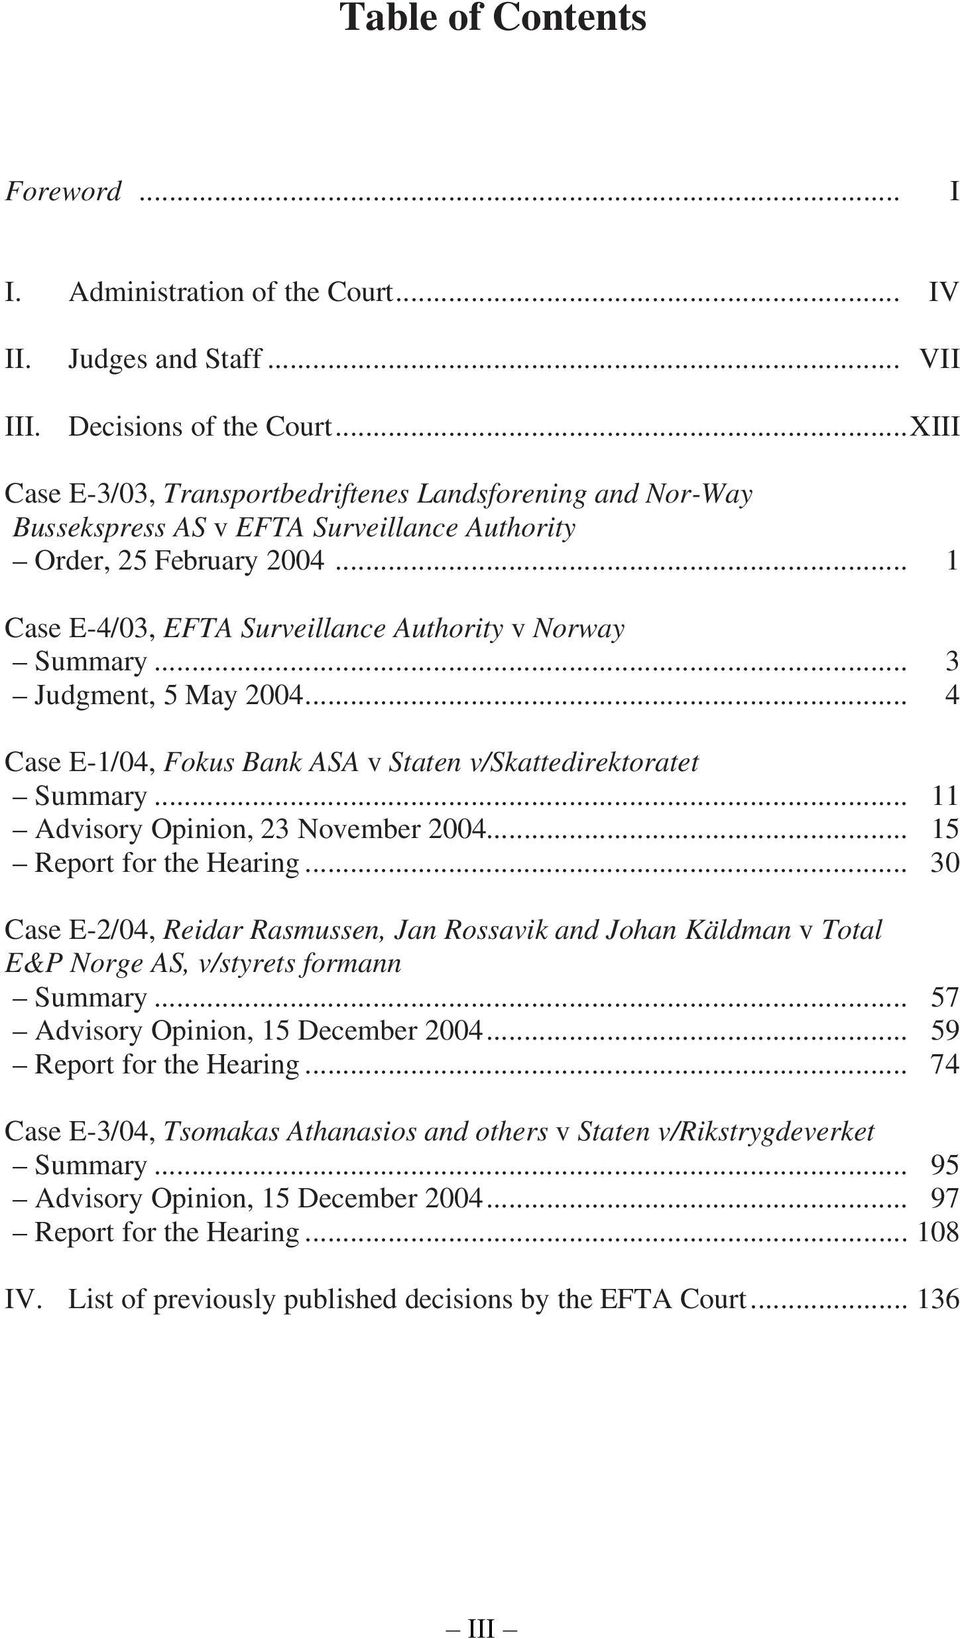 .. 3 Judgment, 5 May 2004... 4 Case E-1/04, Fokus Bank ASA v Staten v/skattedirektoratet Summary... 11 Advisory Opinion, 23 November 2004... 15 Report for the Hearing.